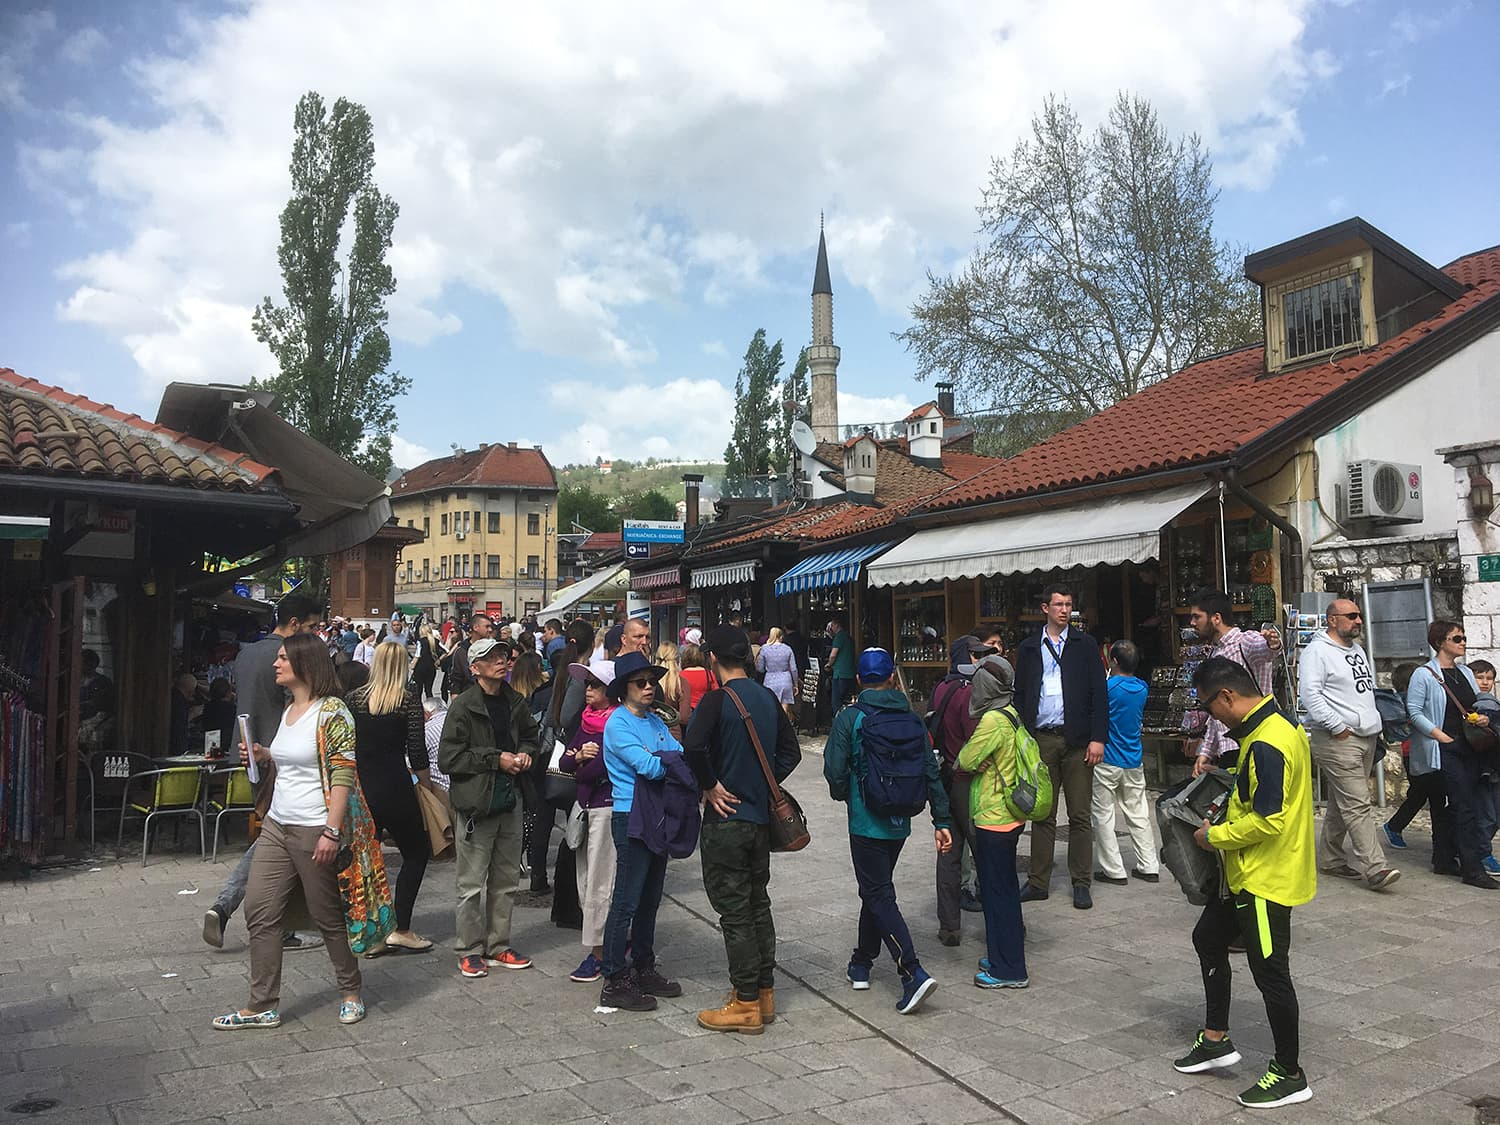 The market is usually bustling with activity and is also a popular tourist attraction.